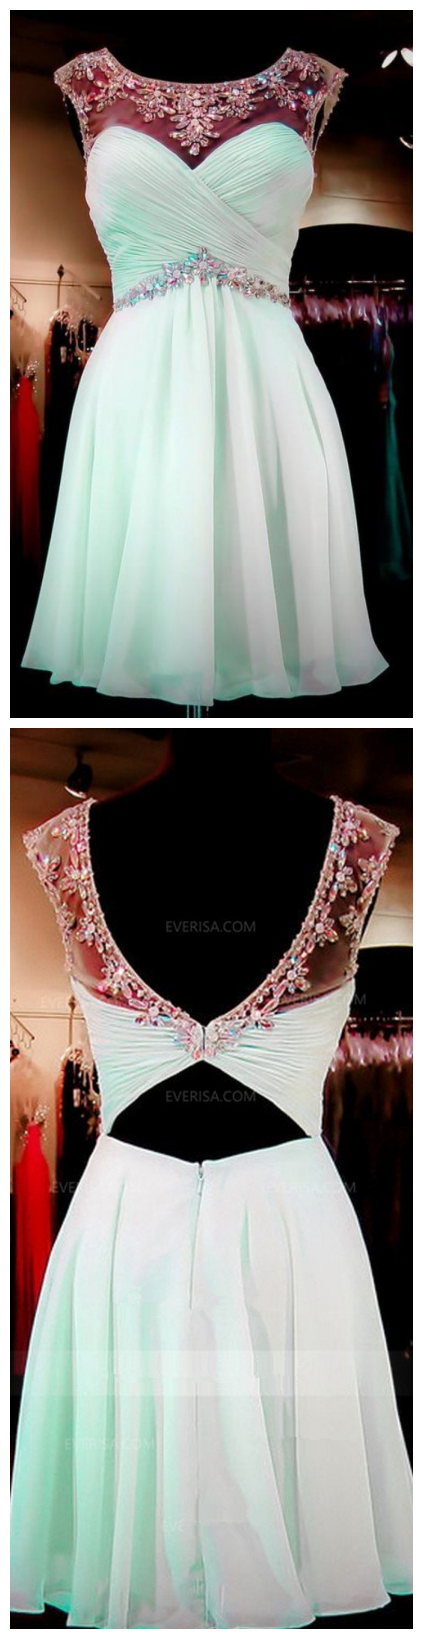 Sleeveless Backless Chiffon Homecoming Dresses Affordable Cocktail Dresses